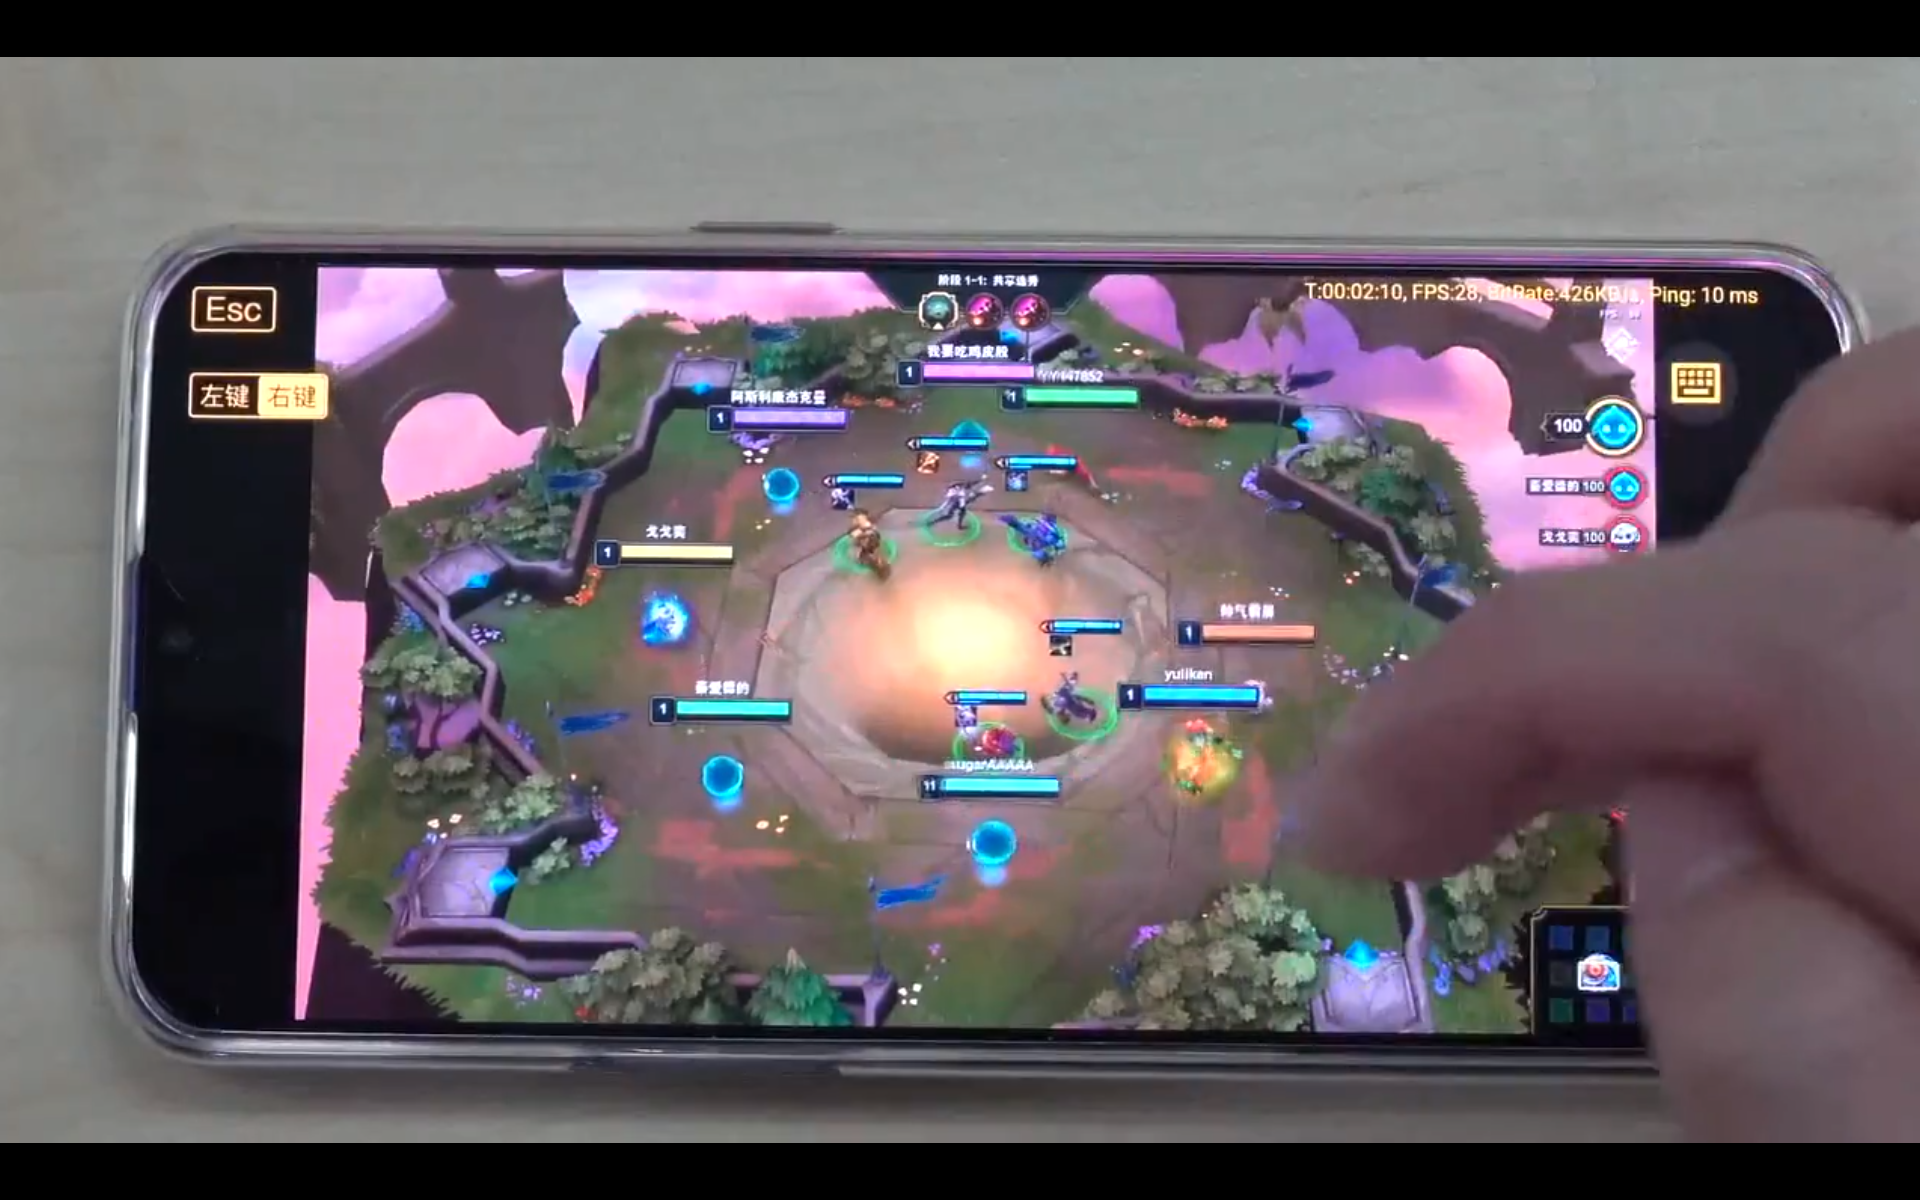 Tencent launches app for streaming PC games to smartphones